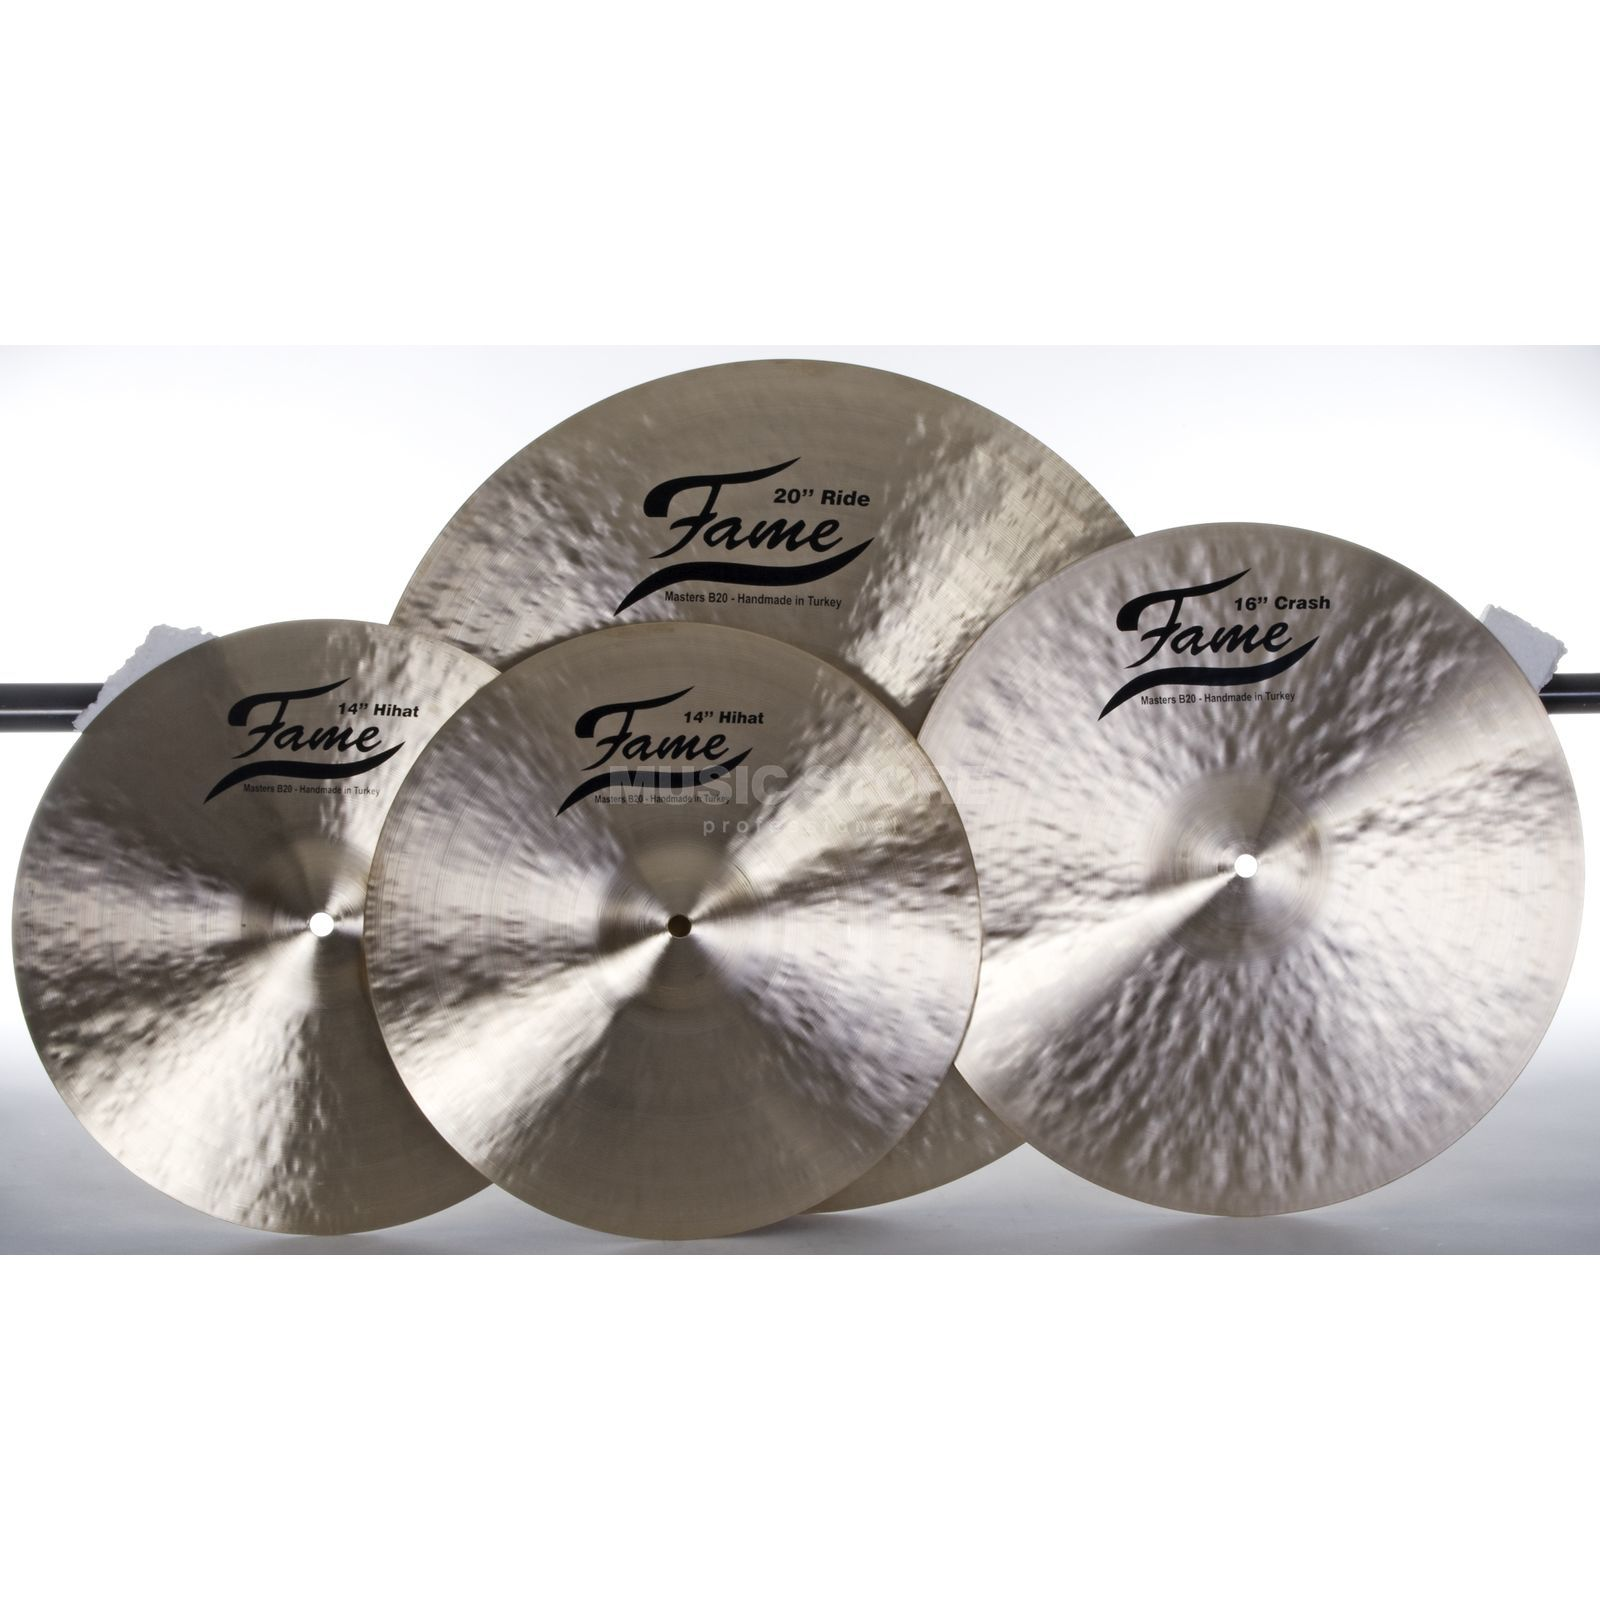 "SET FAME Masters B20 CymbalSet III Heavy; 14""HH, 16""CR, 20""R Produktbild"